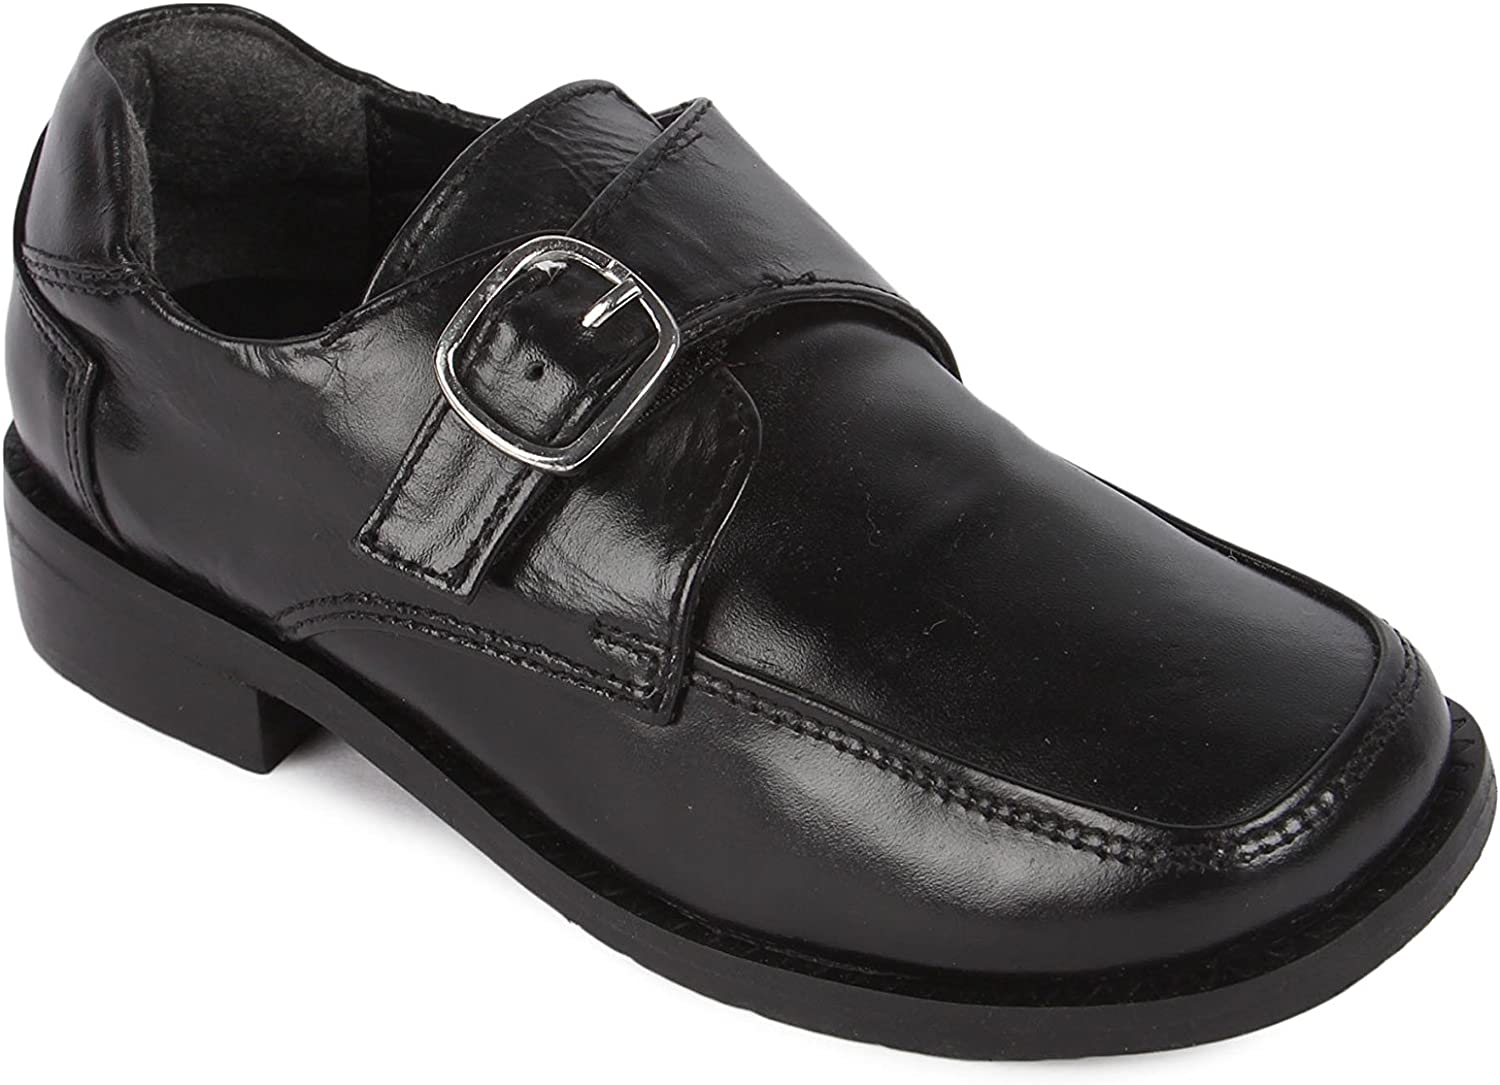 Liberty Toddlers Dress Shoes School Uniform Walking Kids Genuine Leather Gliders Age 1-4 Years